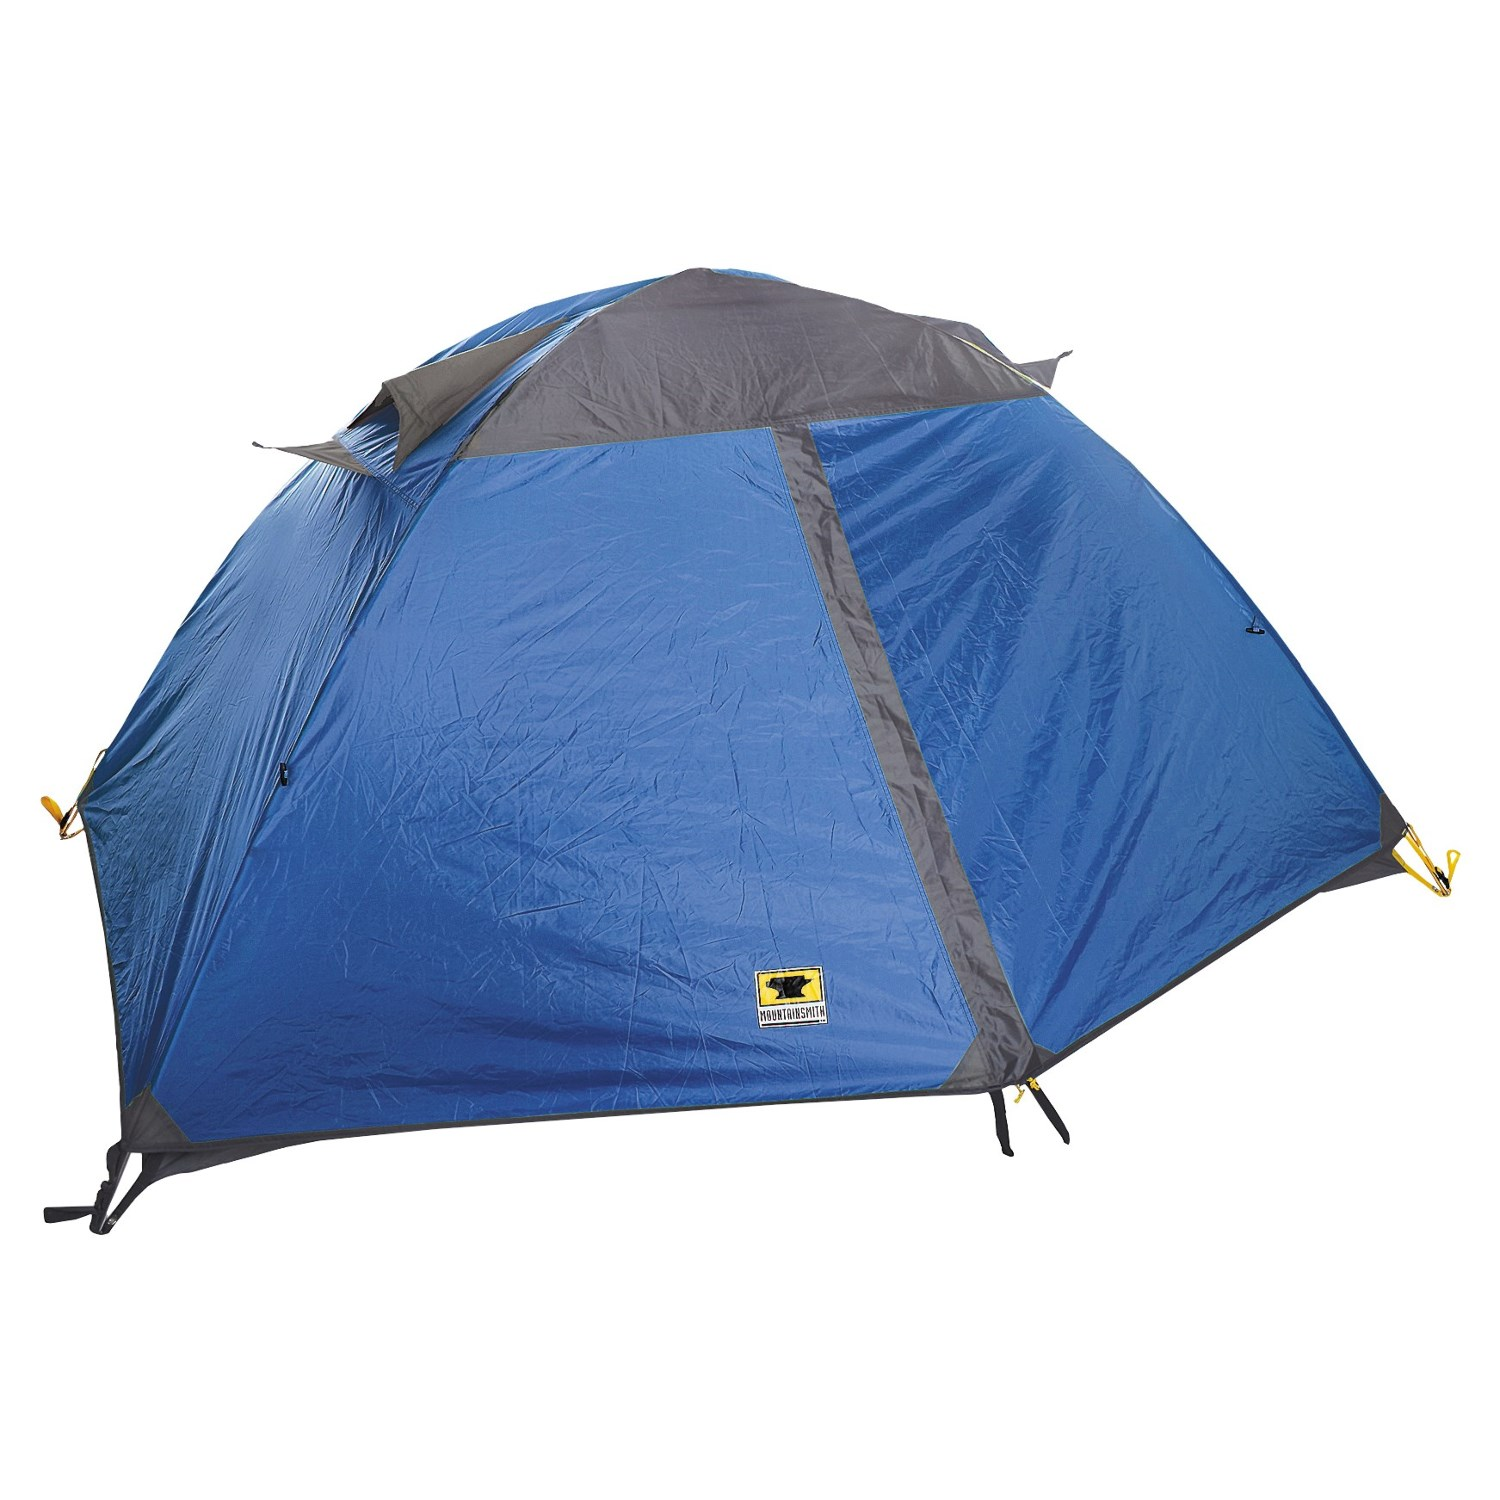 Mountainsmith Celestial Tent - 2-Person 3-Season  sc 1 st  Sierra Trading Post : 1 2 person tent - memphite.com